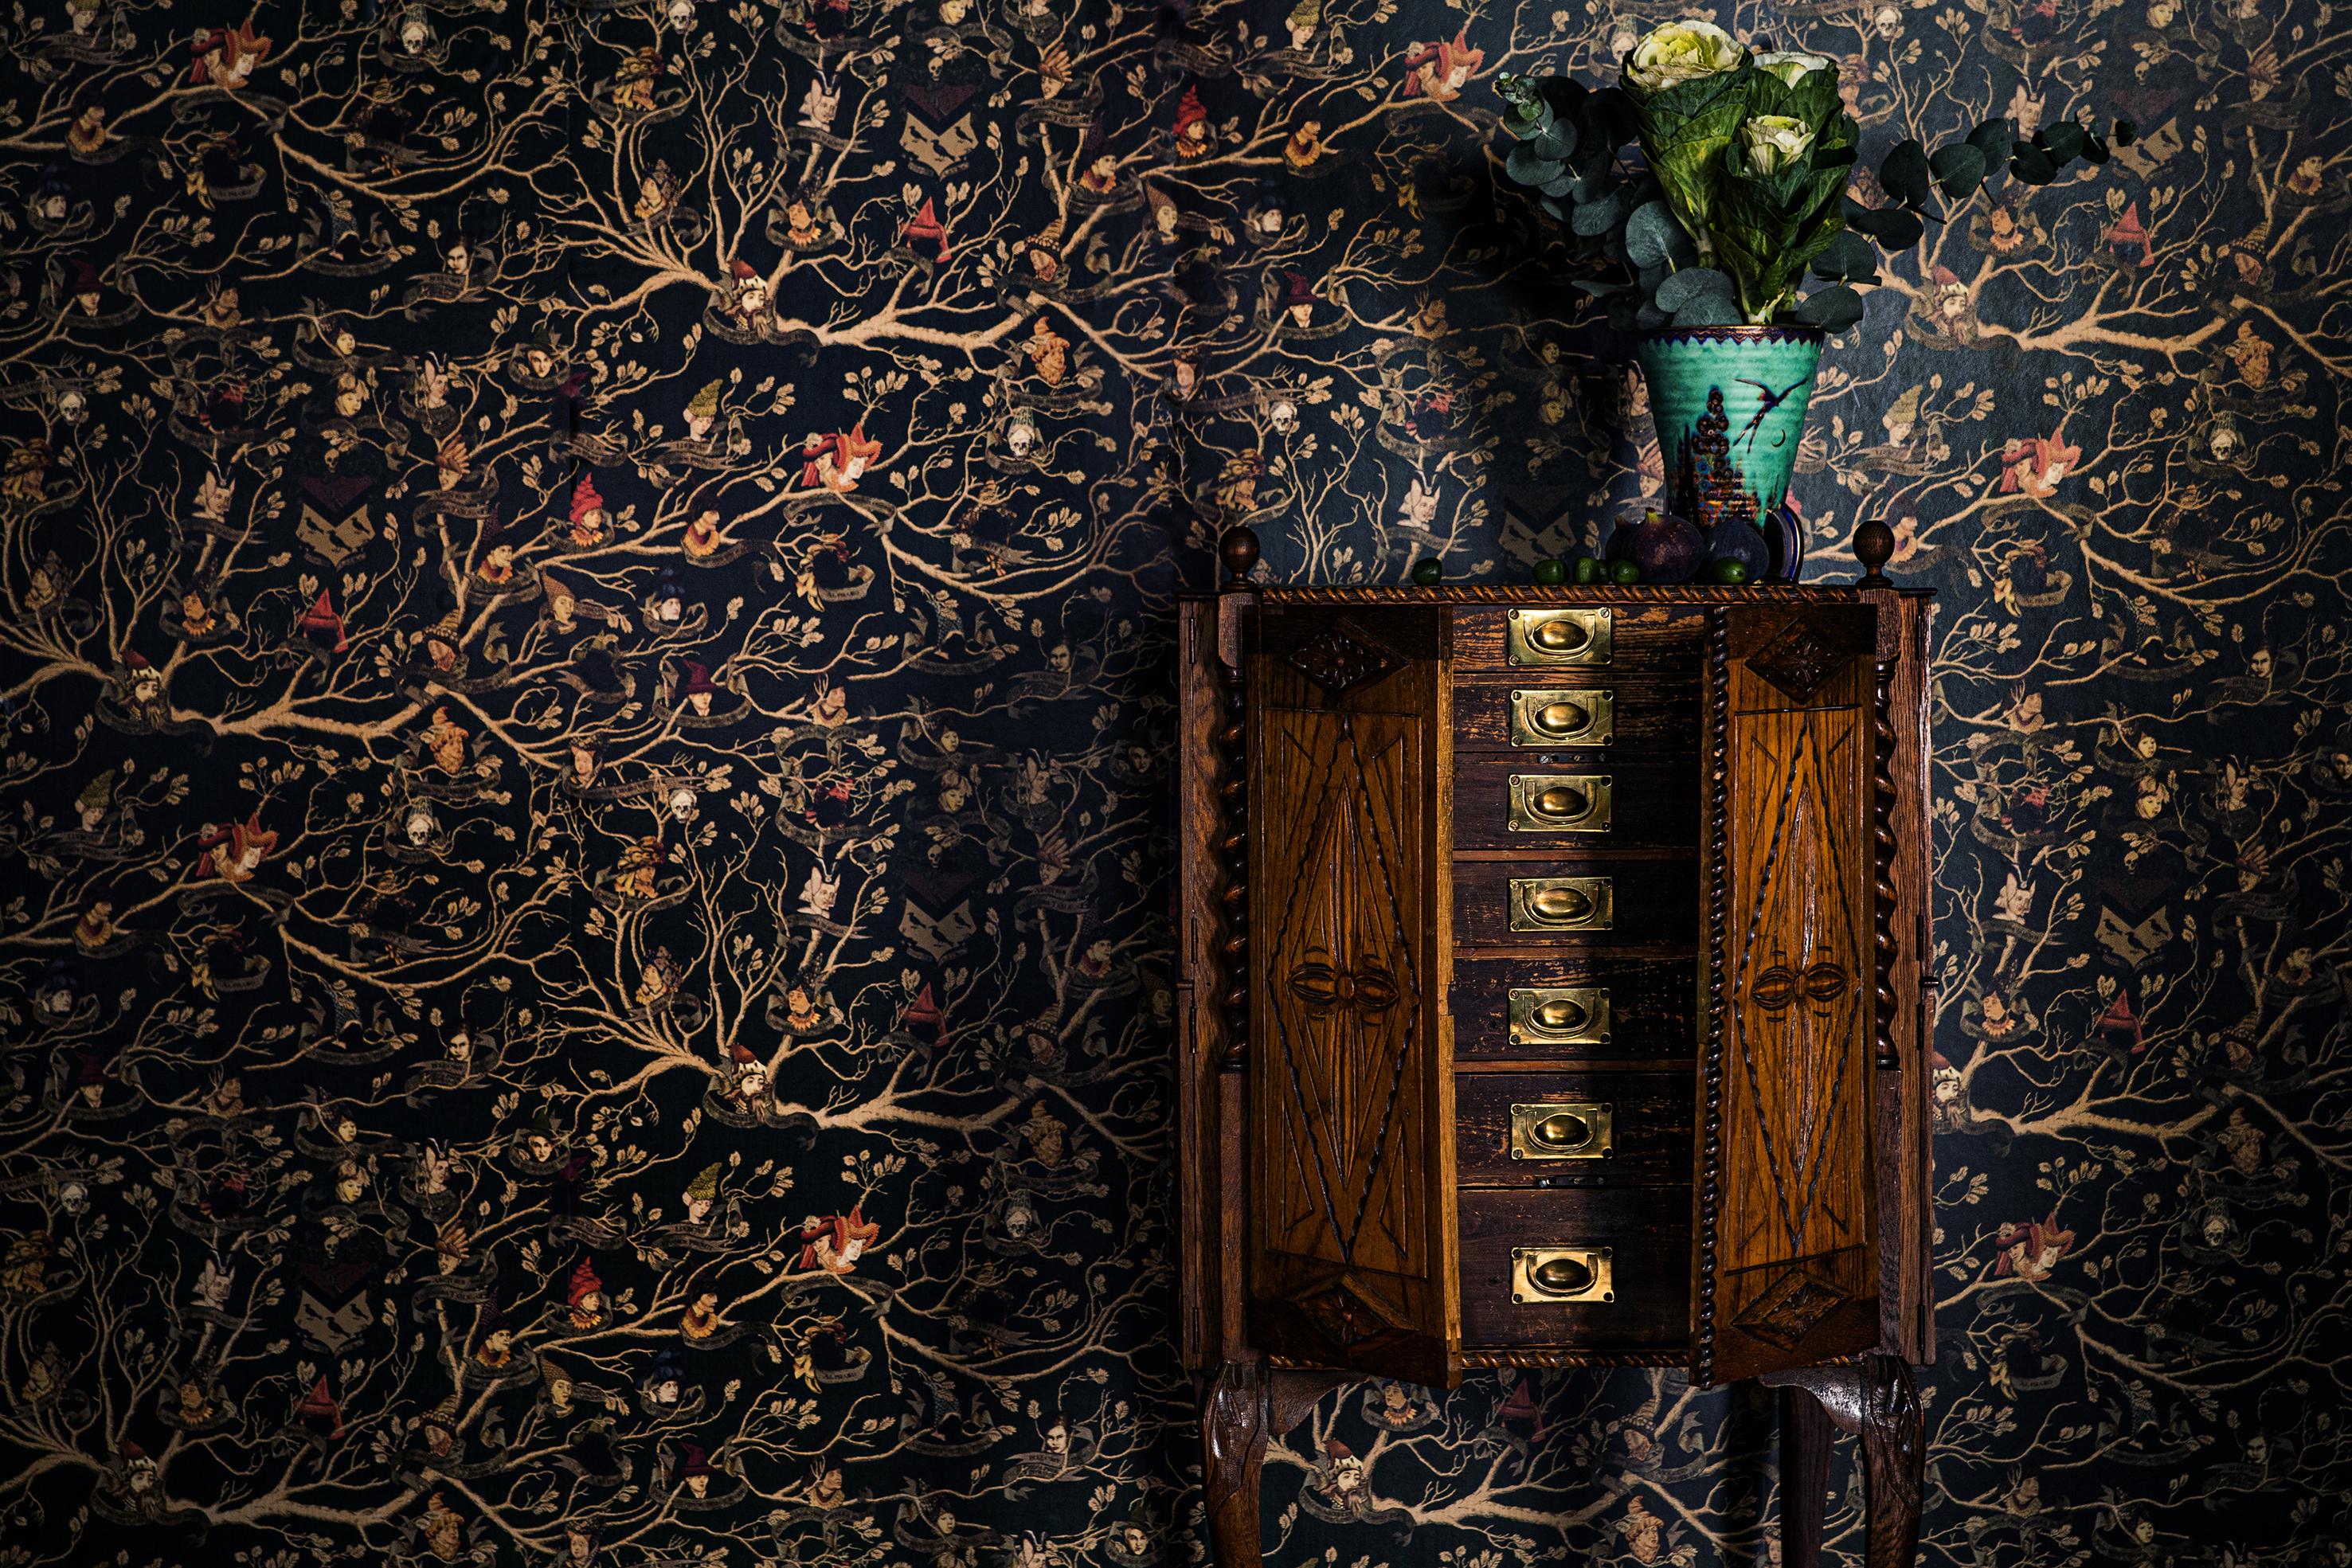 The Black family tapestry wallpaper shows flourishes of branches and leaves with small portraits of the Black family members.